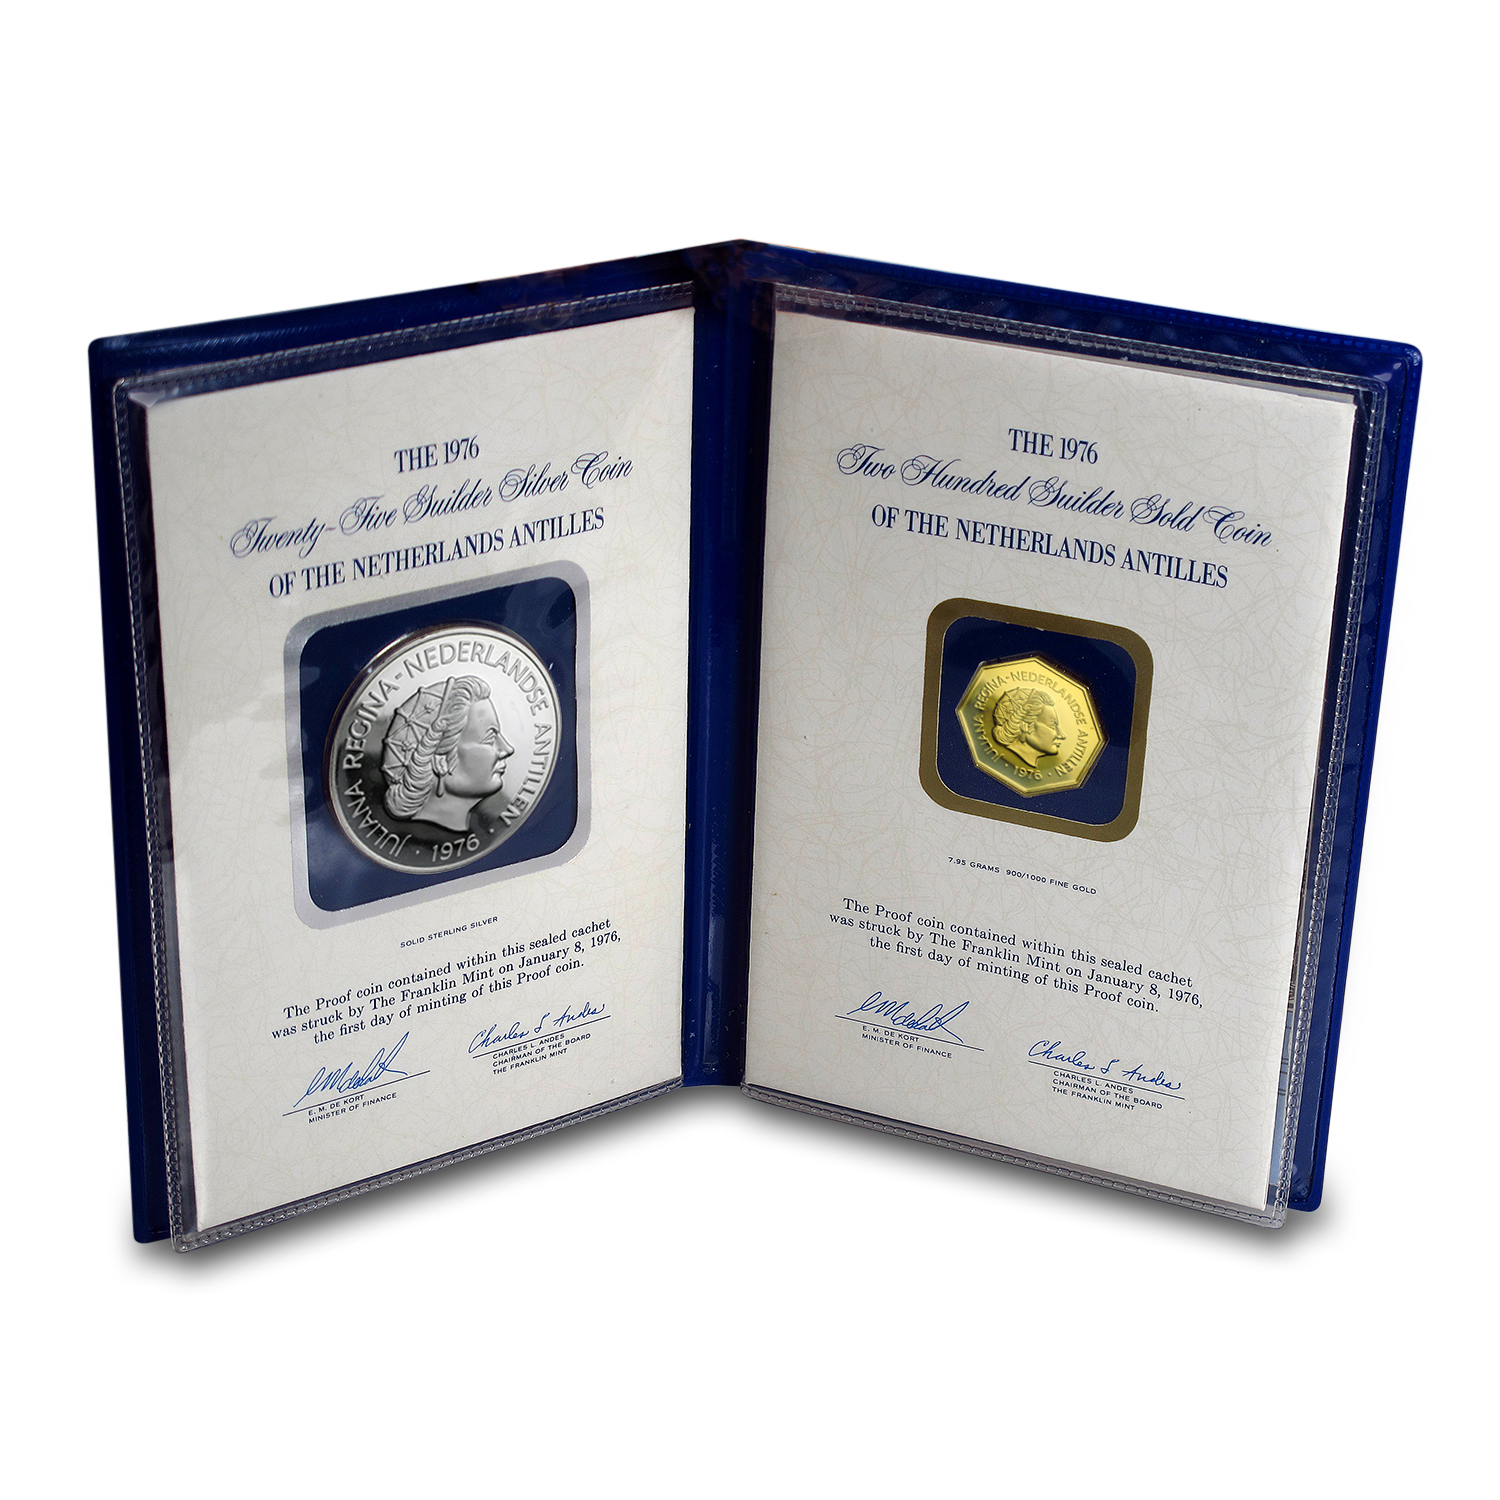 1976 Netherlands Antilles Gold/Silver U.S. Bicentennial Set Proof